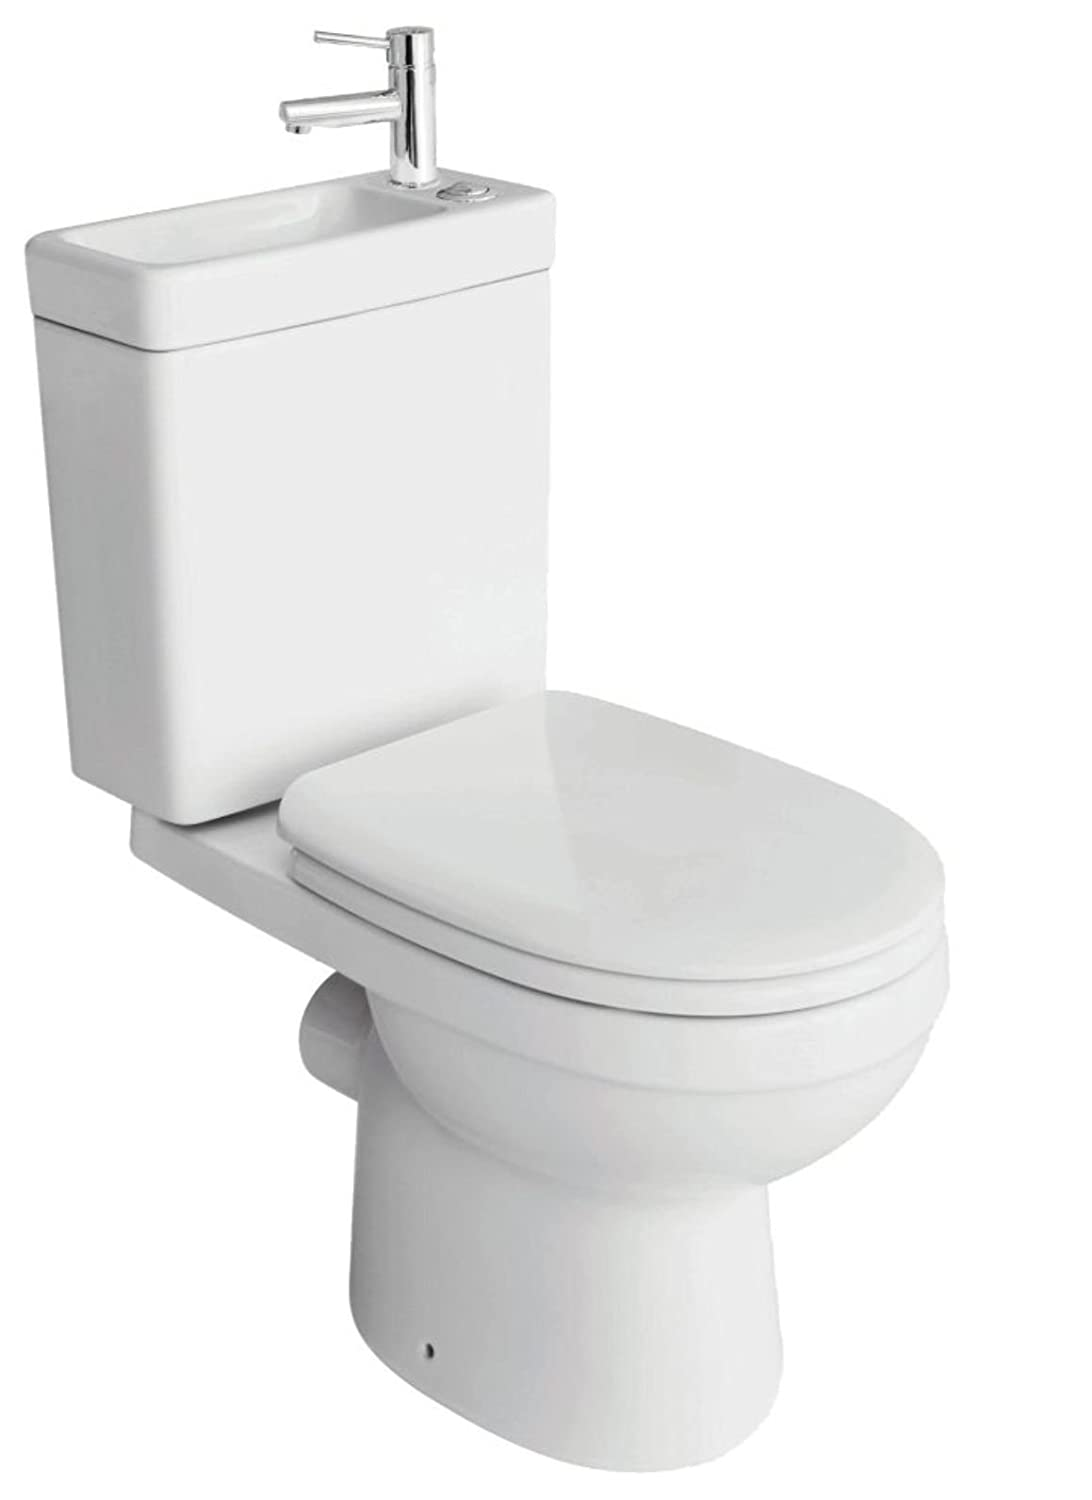 2in1 Combo Combination Toilet Sink Together Wash Basin Bathroom Wc